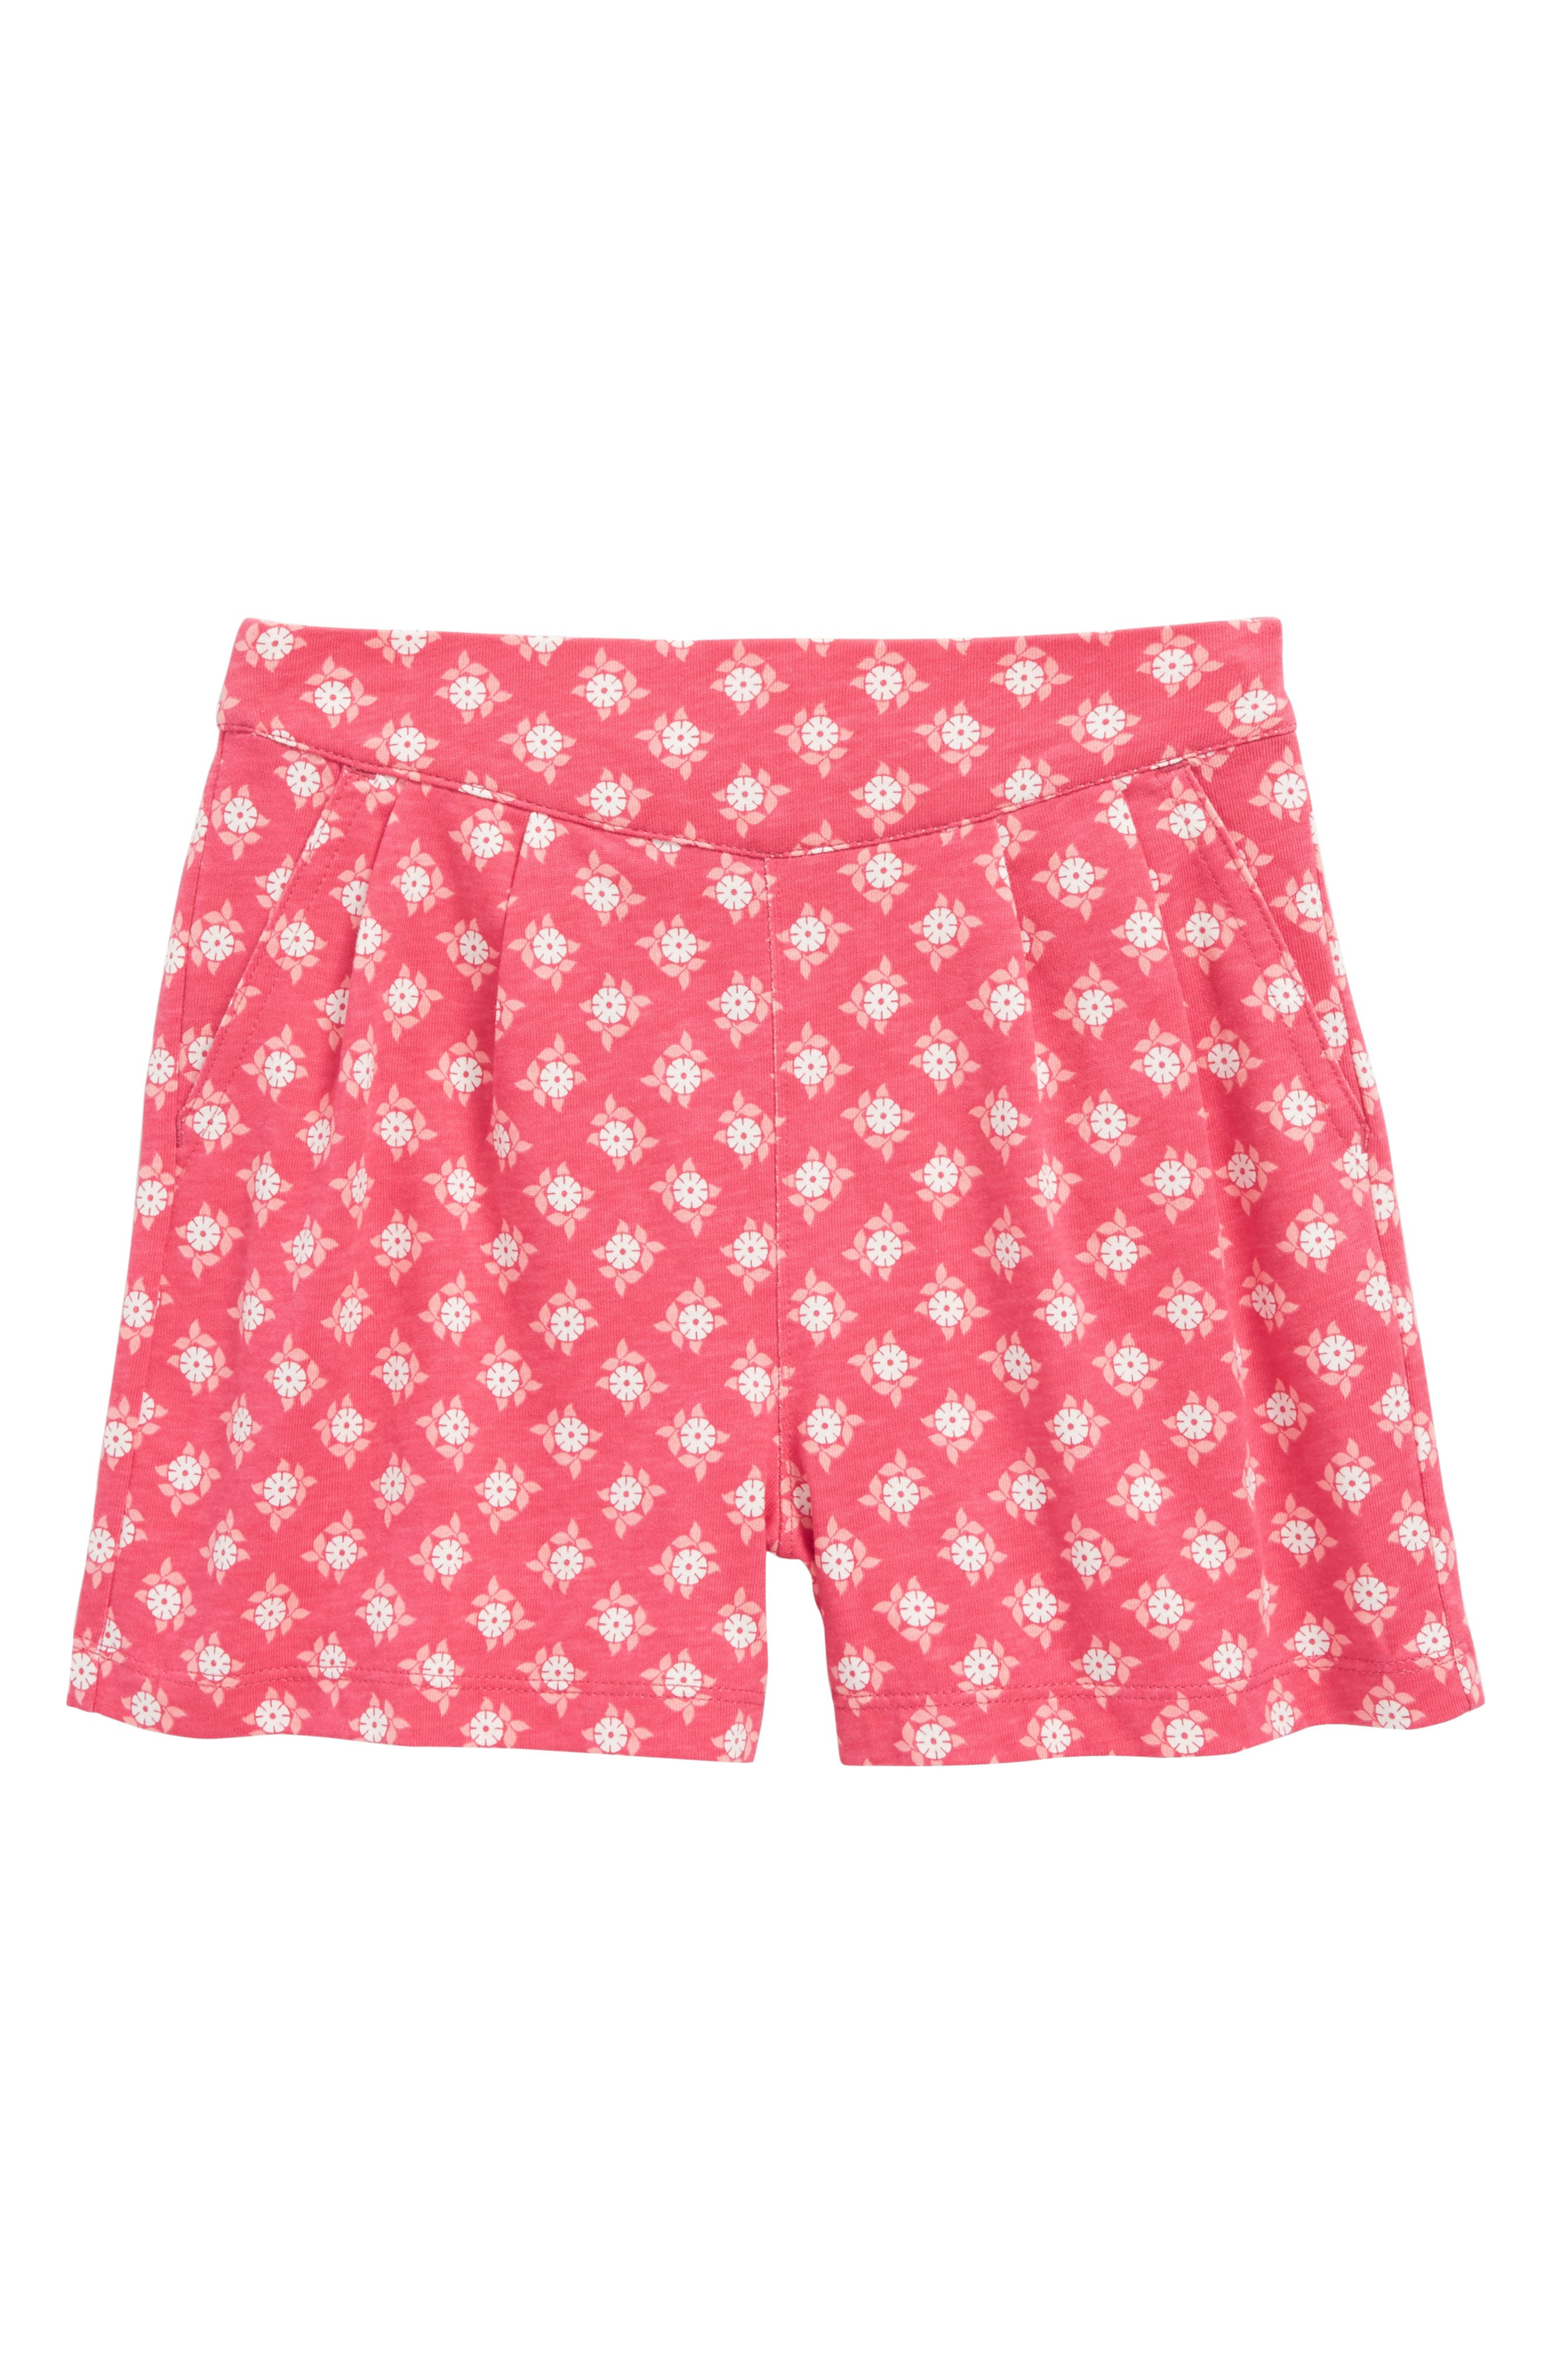 Sunburst Deck Shorts,                             Main thumbnail 1, color,                             650